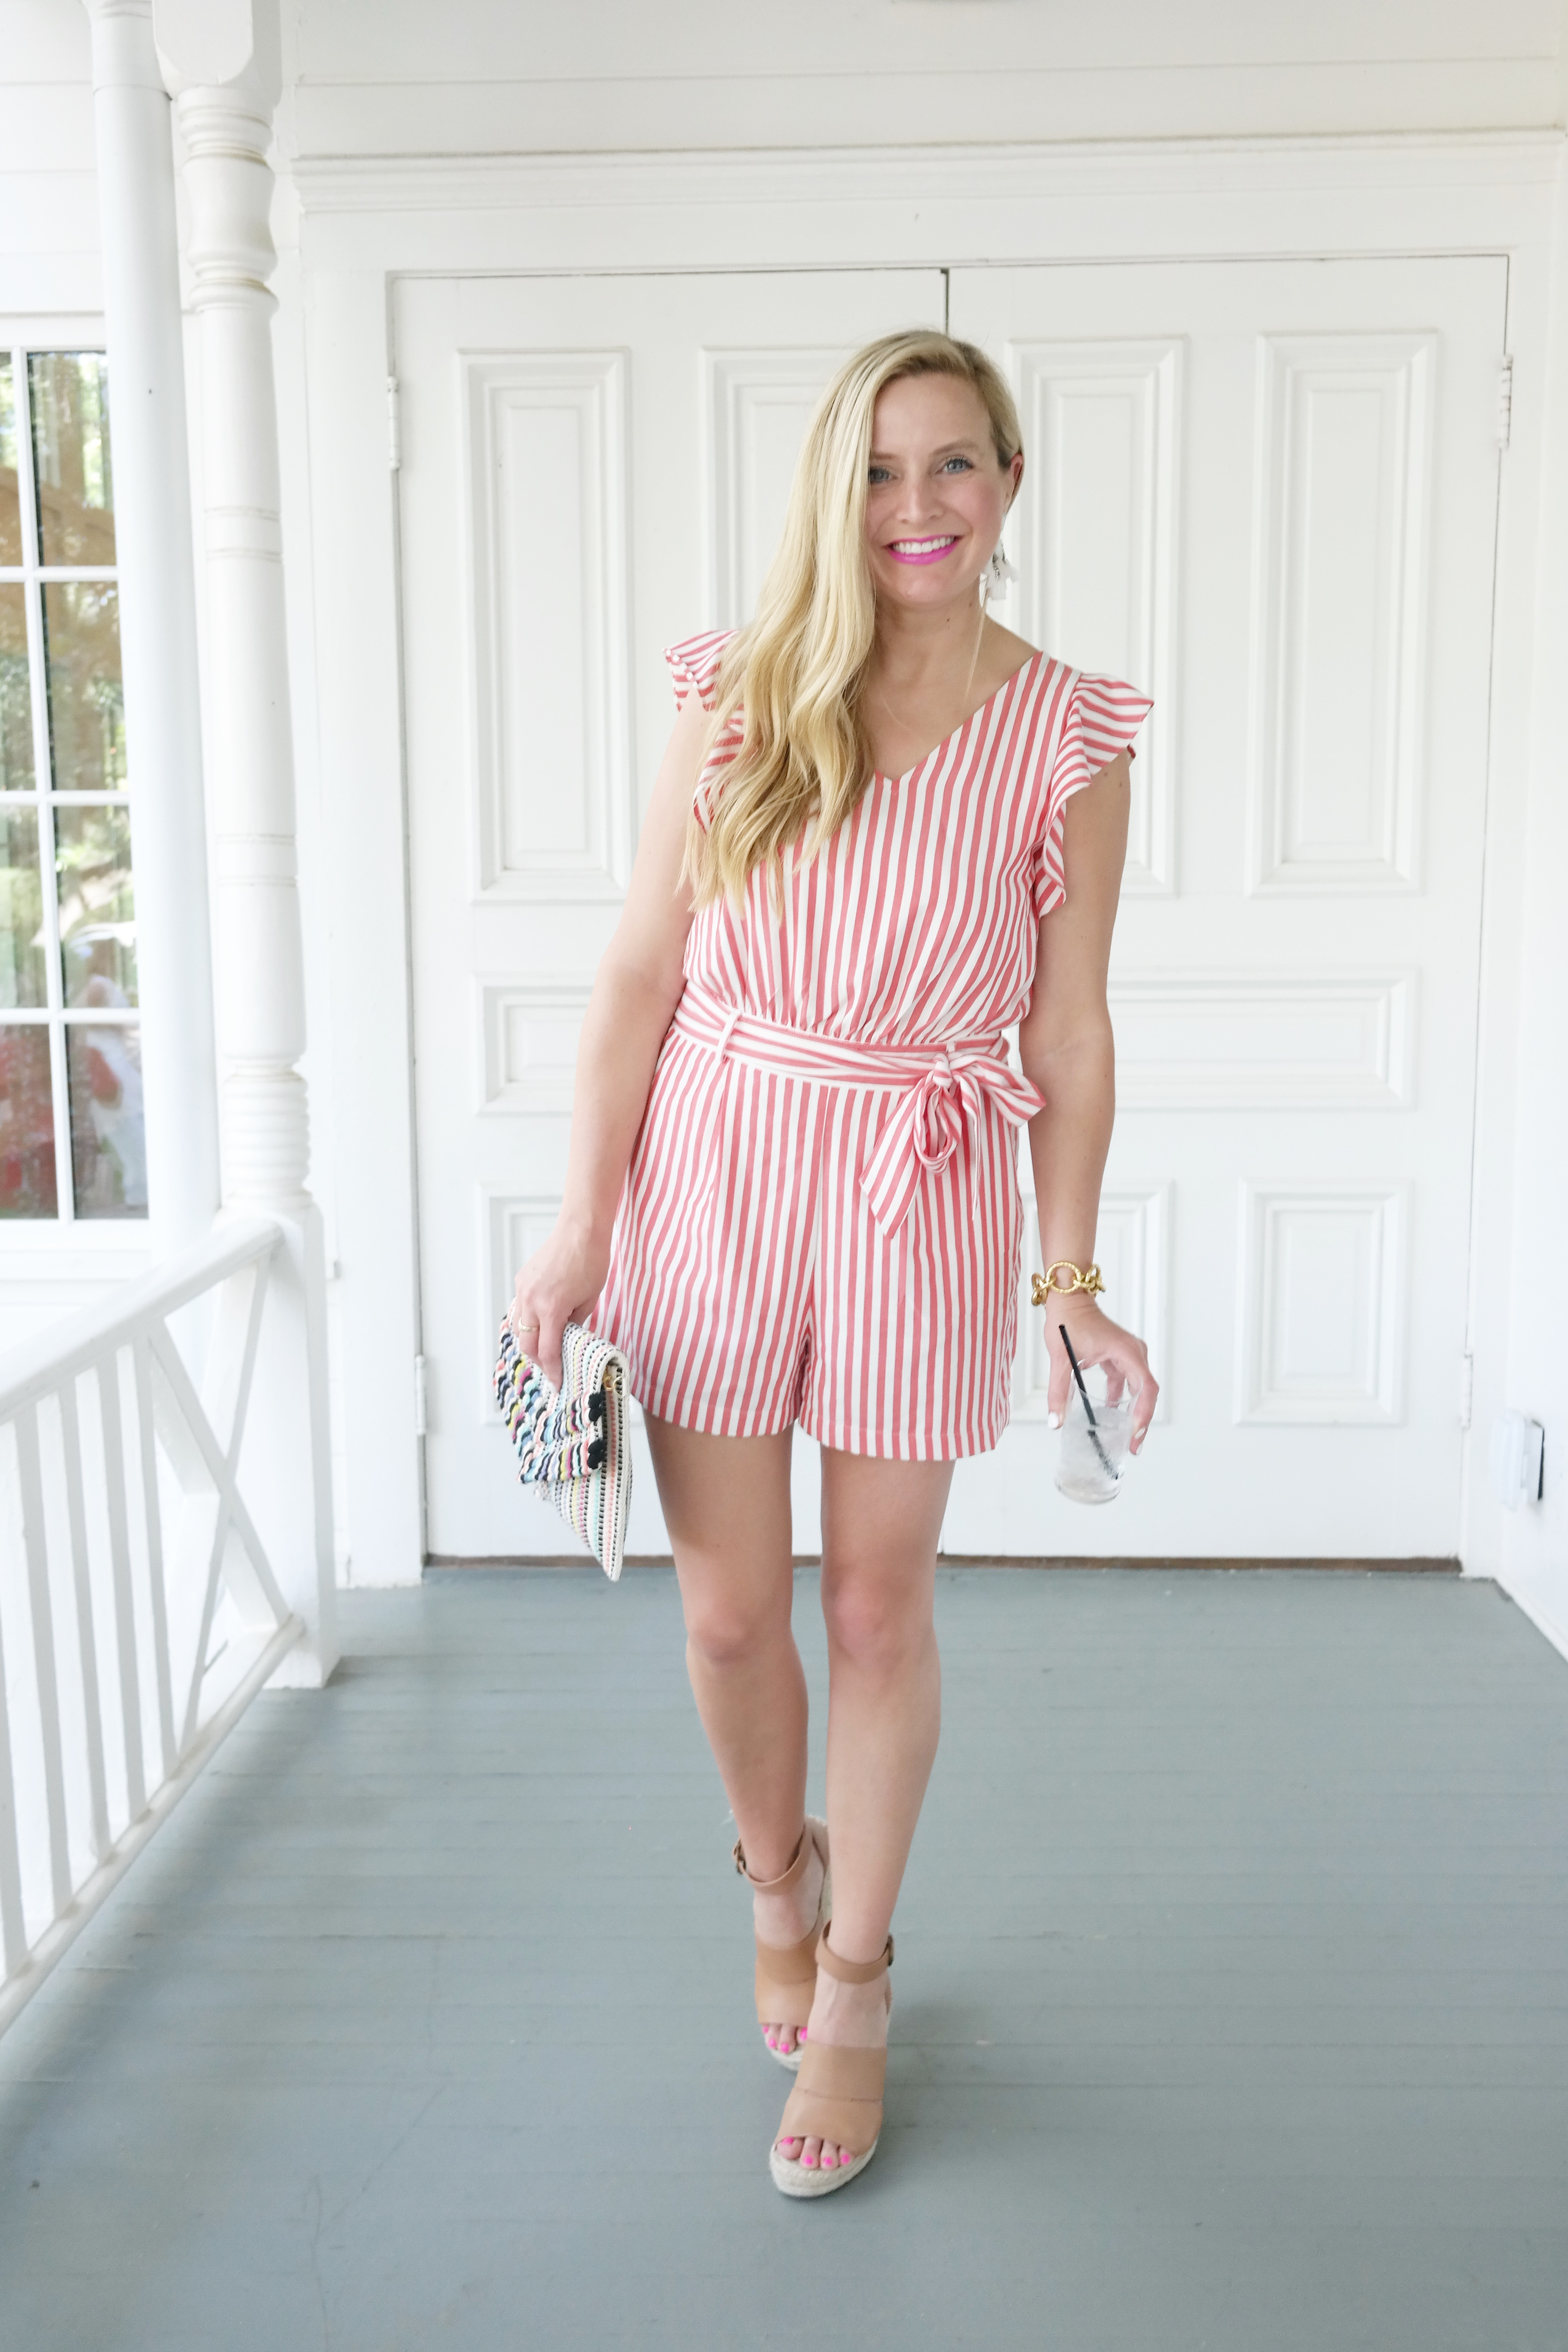 Loft Romper - Nordstrom Summer Outfits styled by popular Houston fashion blogger, Fancy Ashley